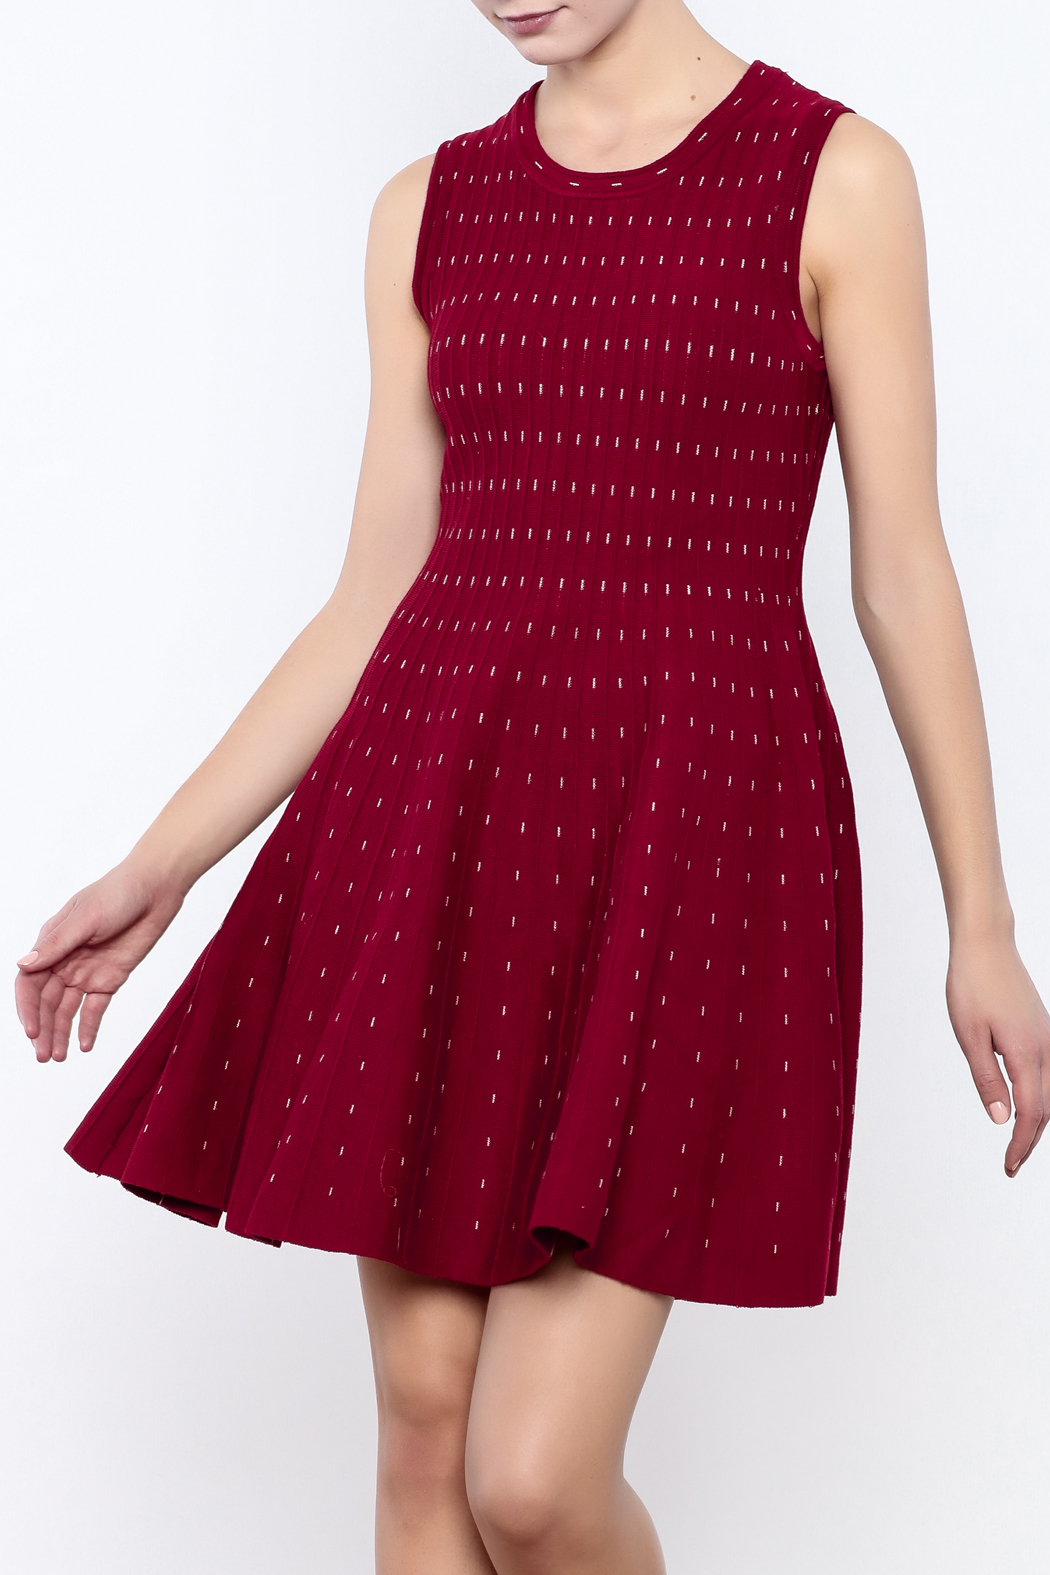 HYFVE Red Dress - Main Image